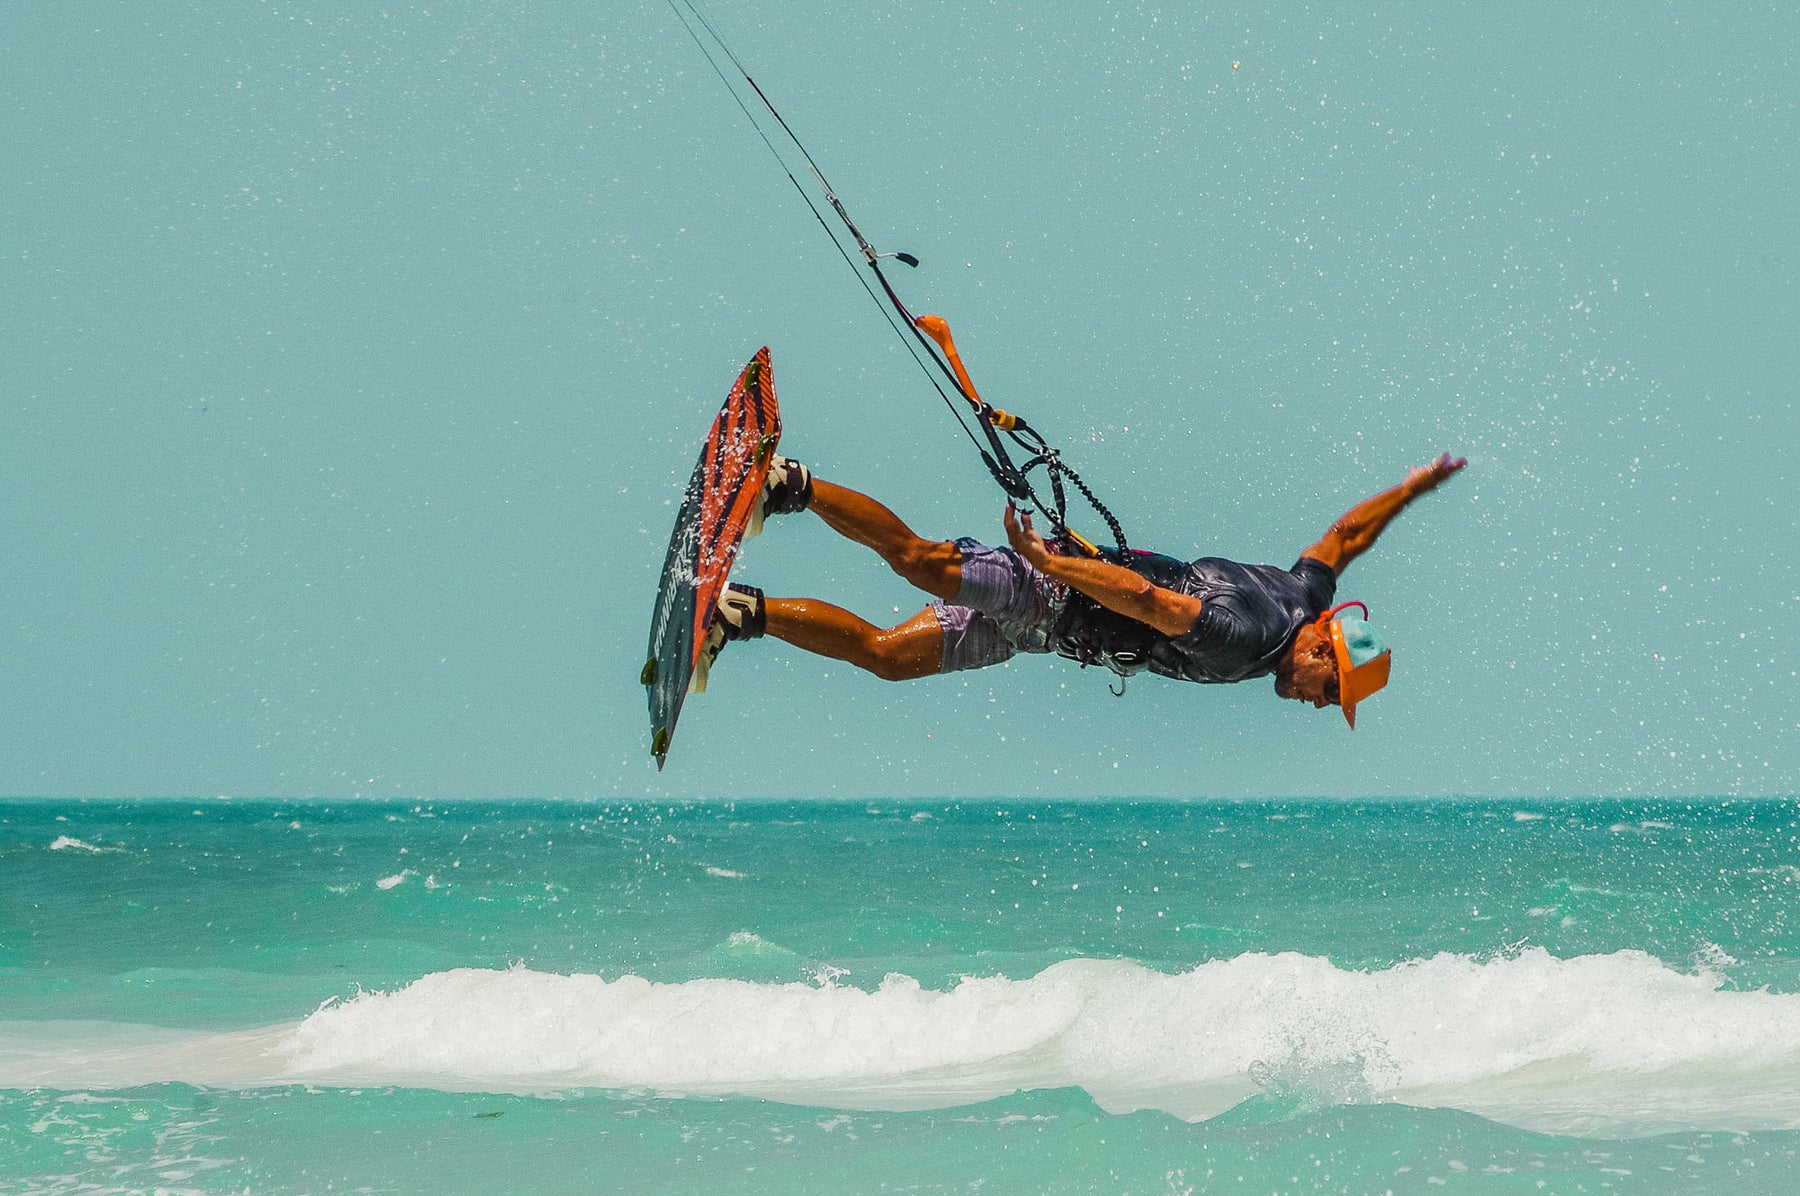 BUOY WEAR founder John Ruffing out in the ocean kiteboarding and wearing an orange floating, waterproof hat.